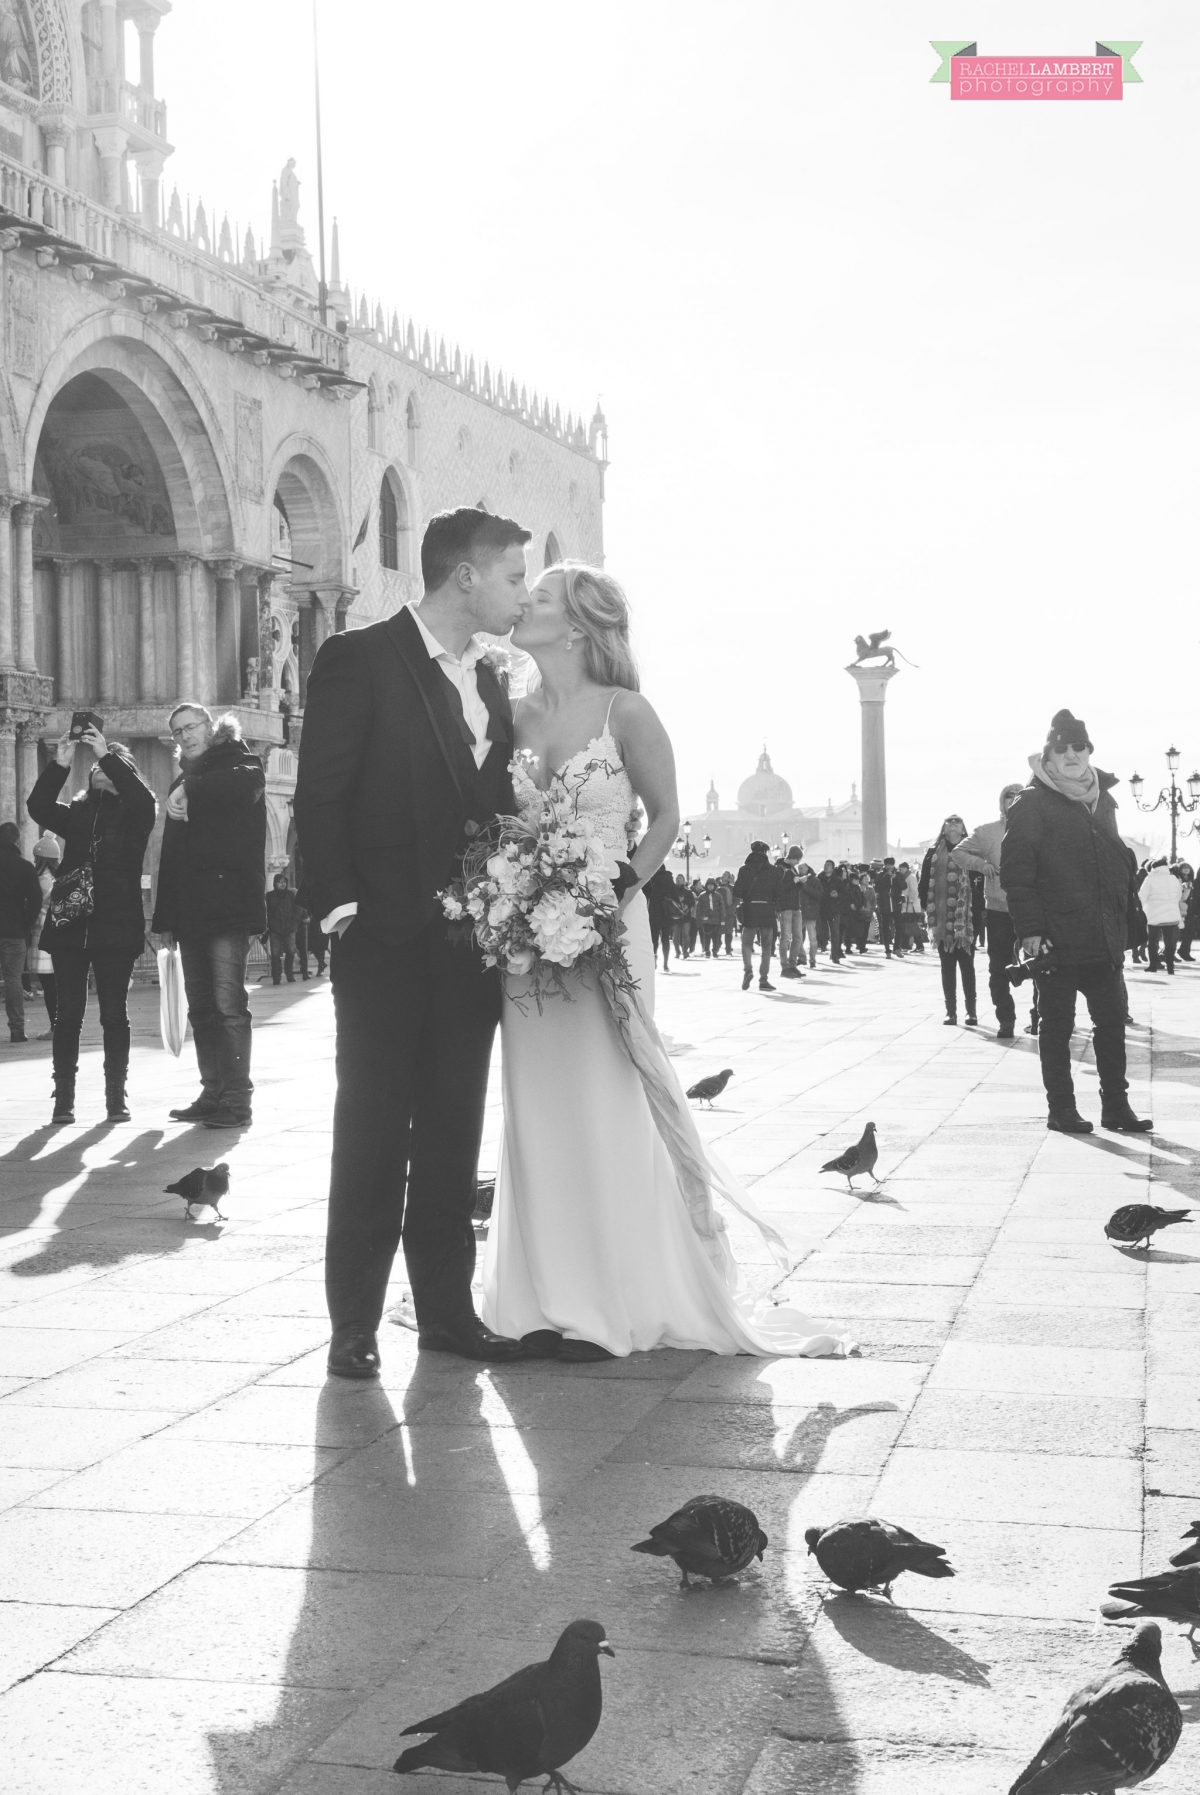 bride and groom pigeons st marks square Venice italy